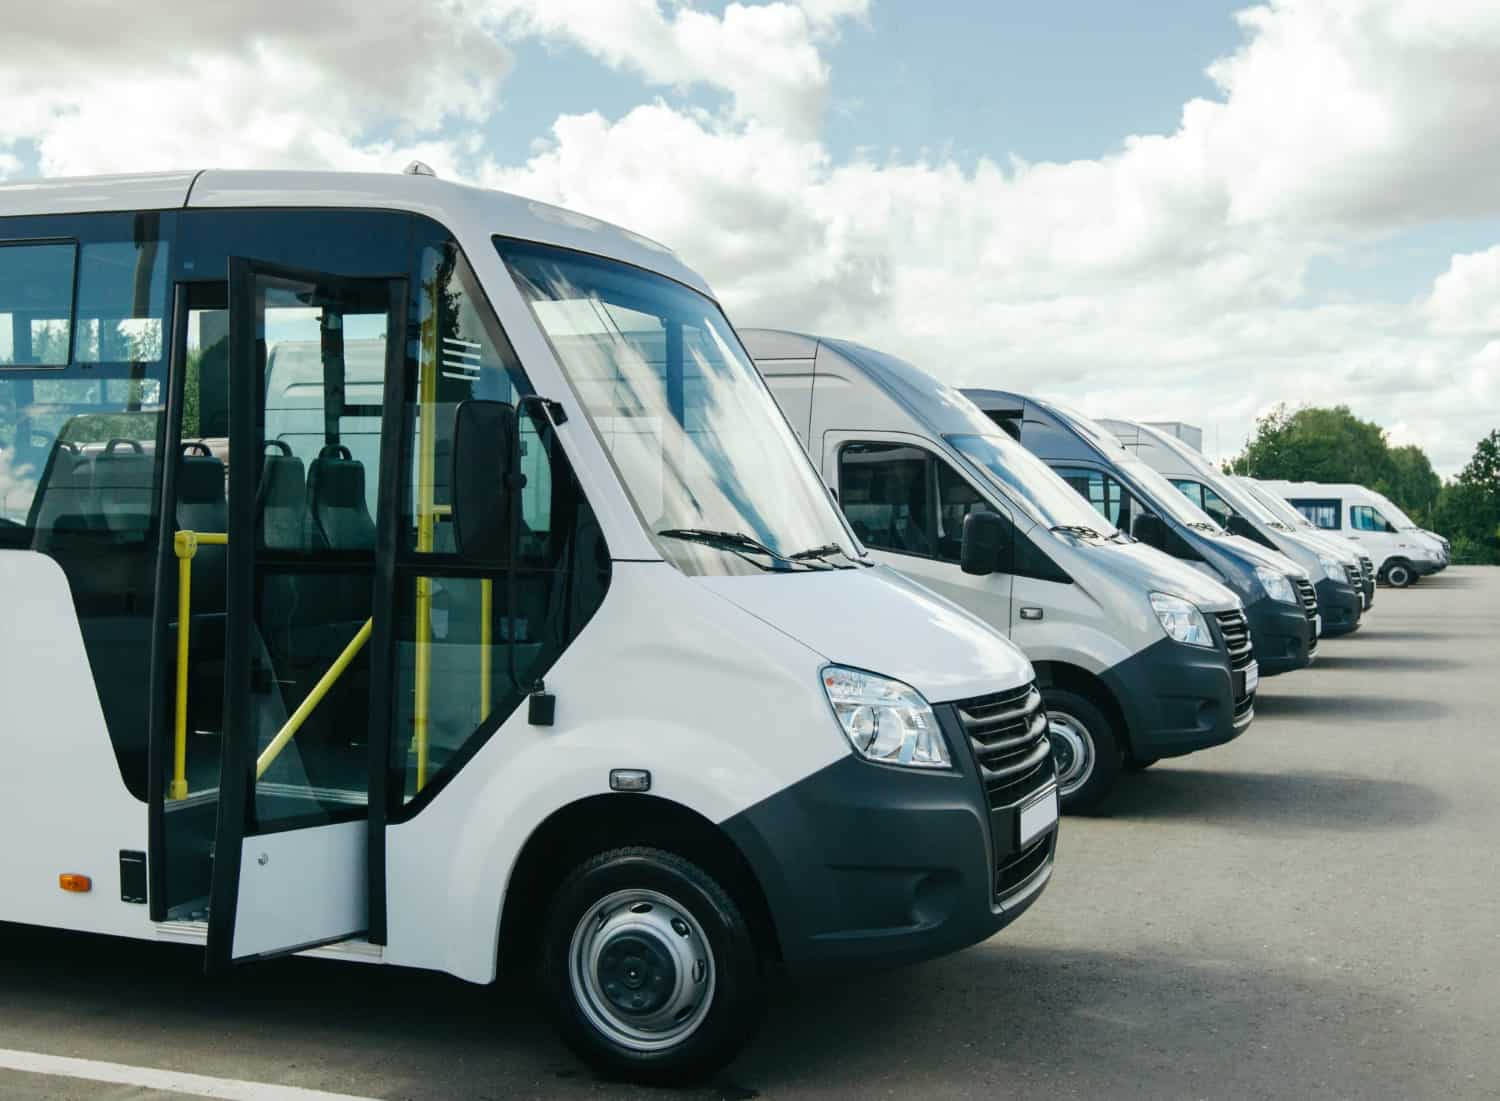 stock-photo-number-of-new-white-minibuses-and-vans-outside-beautiful-white-clouds-1414471718-mini-bus